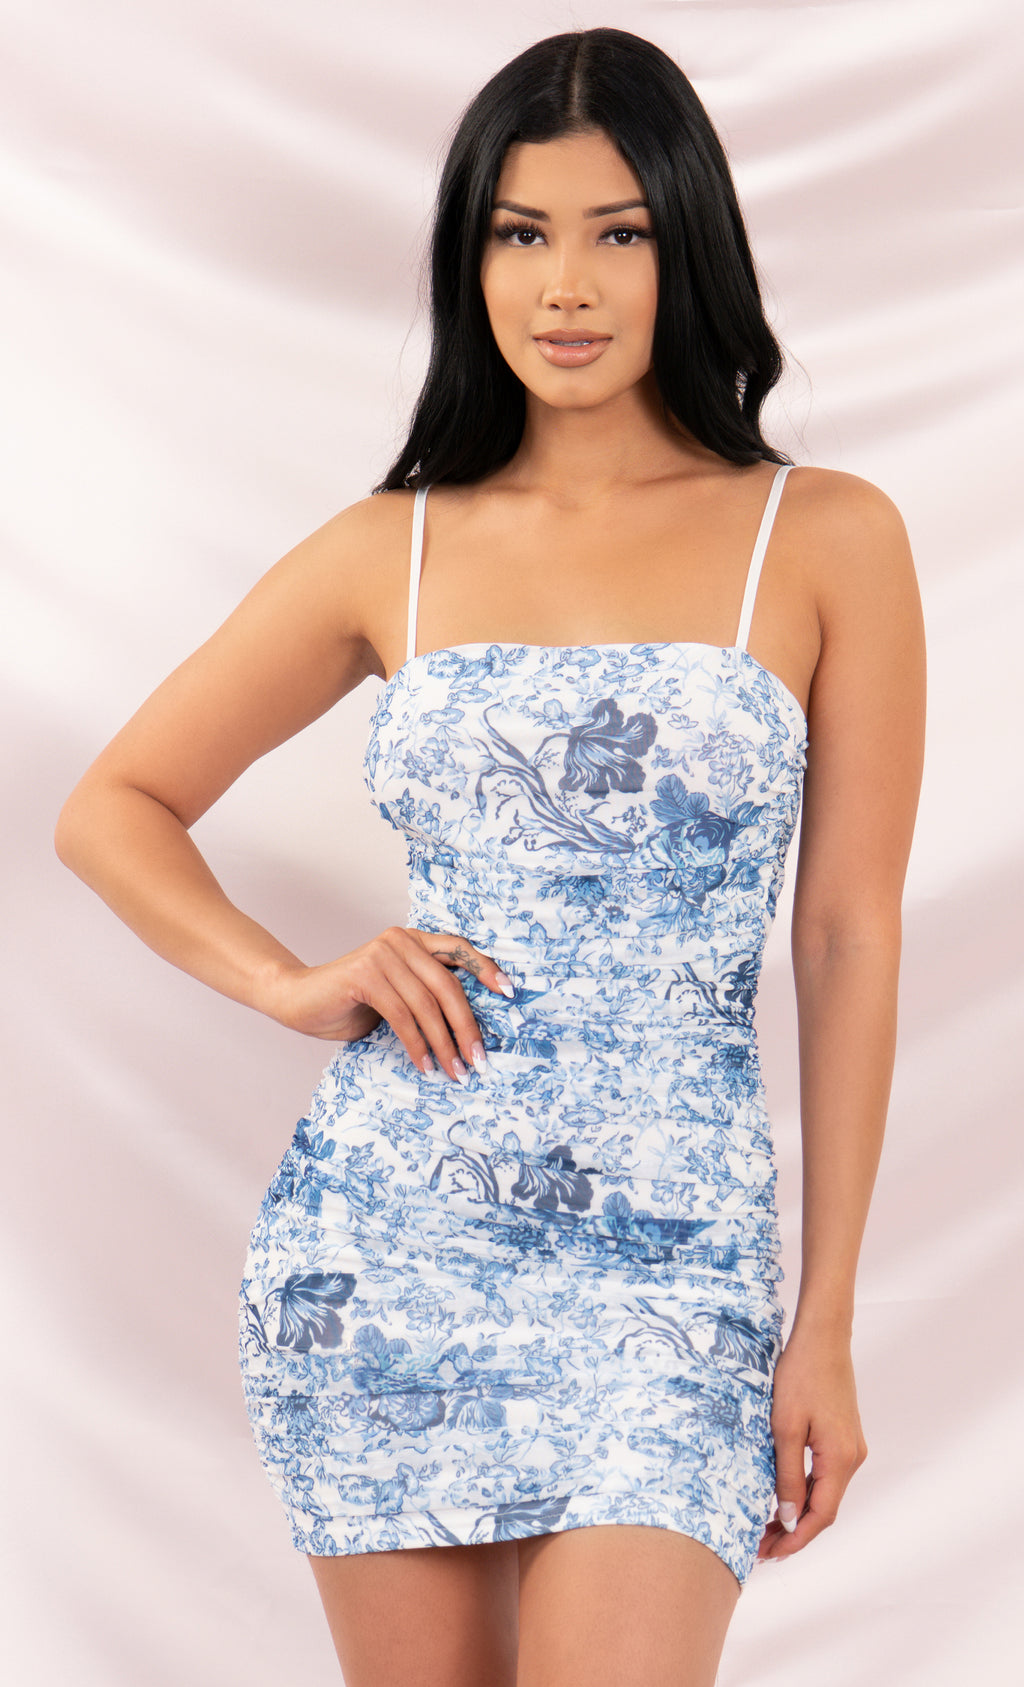 Fine China Blue White Porcelain Floral Pattern Mesh Ruched Bodycon Spaghetti Strap Mini Dress